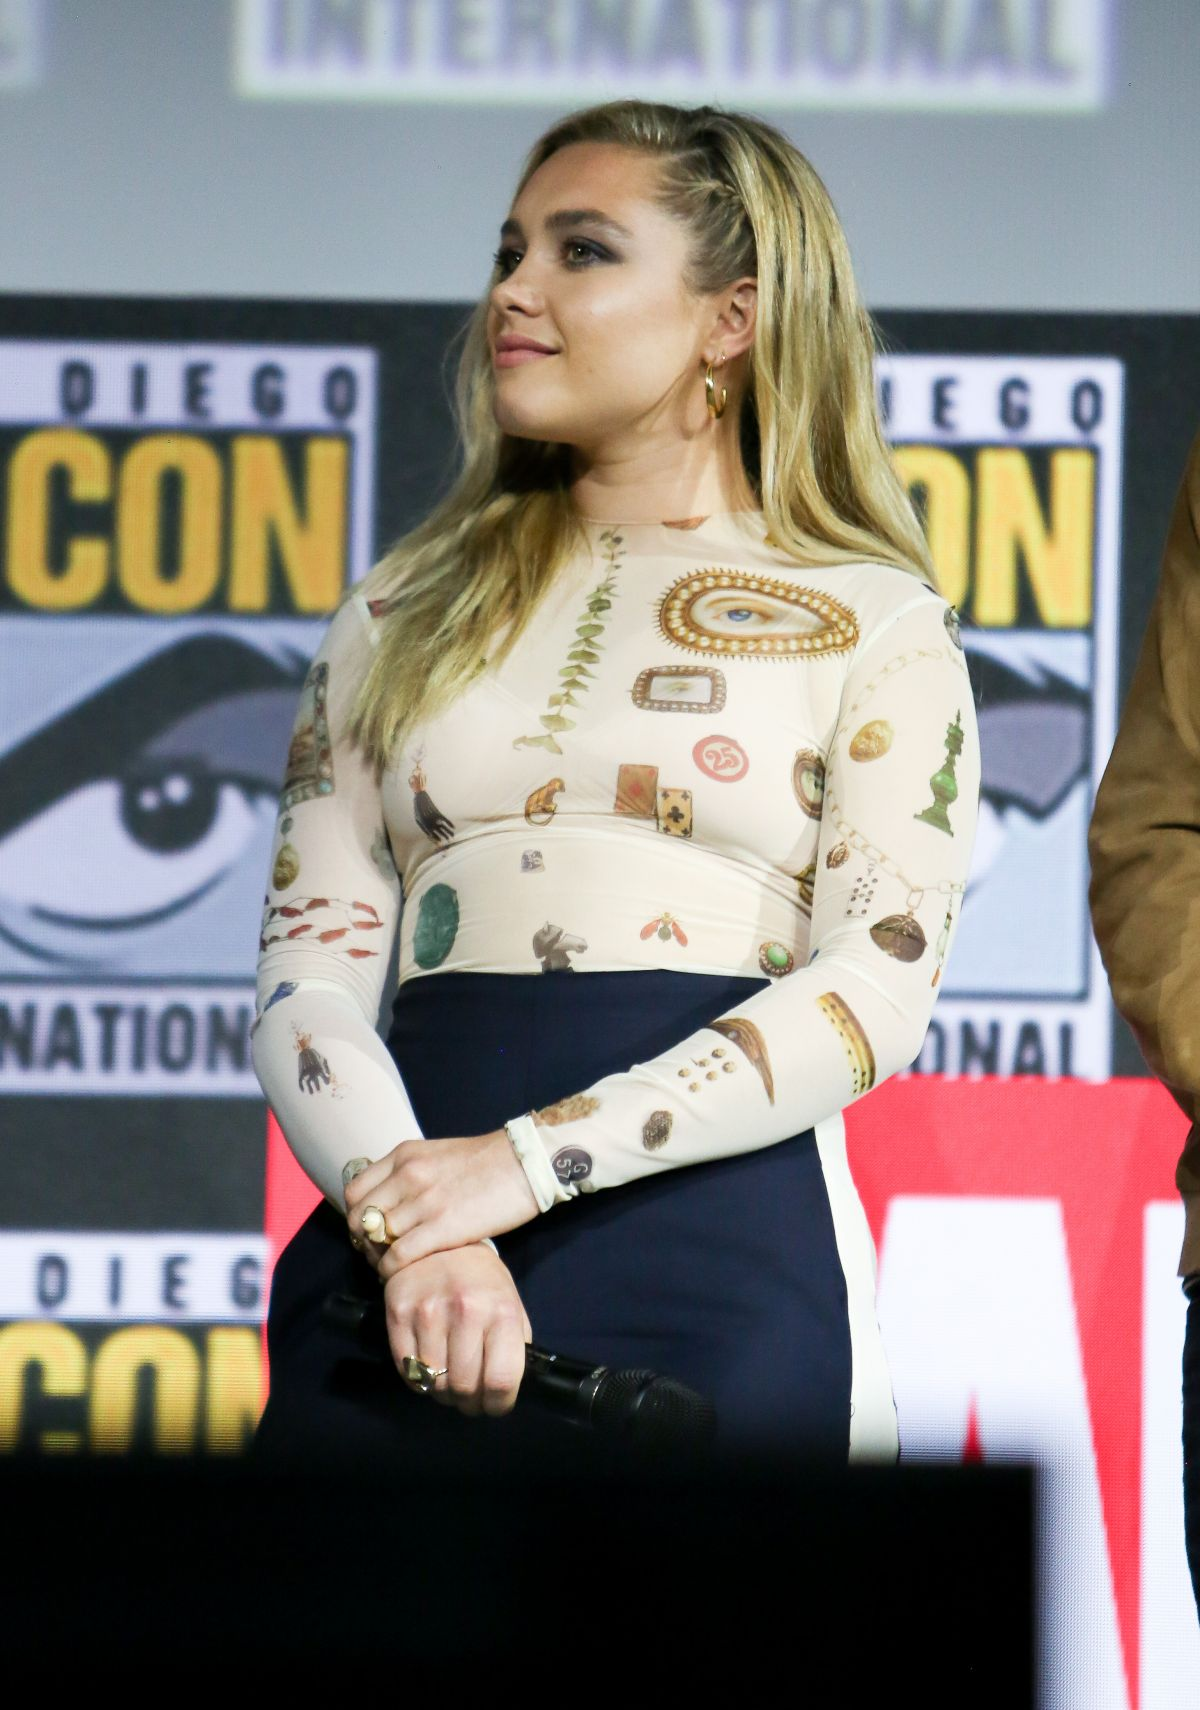 Florence Pugh 2019 >> Florence Pugh At Marvel Panel At Comic Con 2019 In San Diego